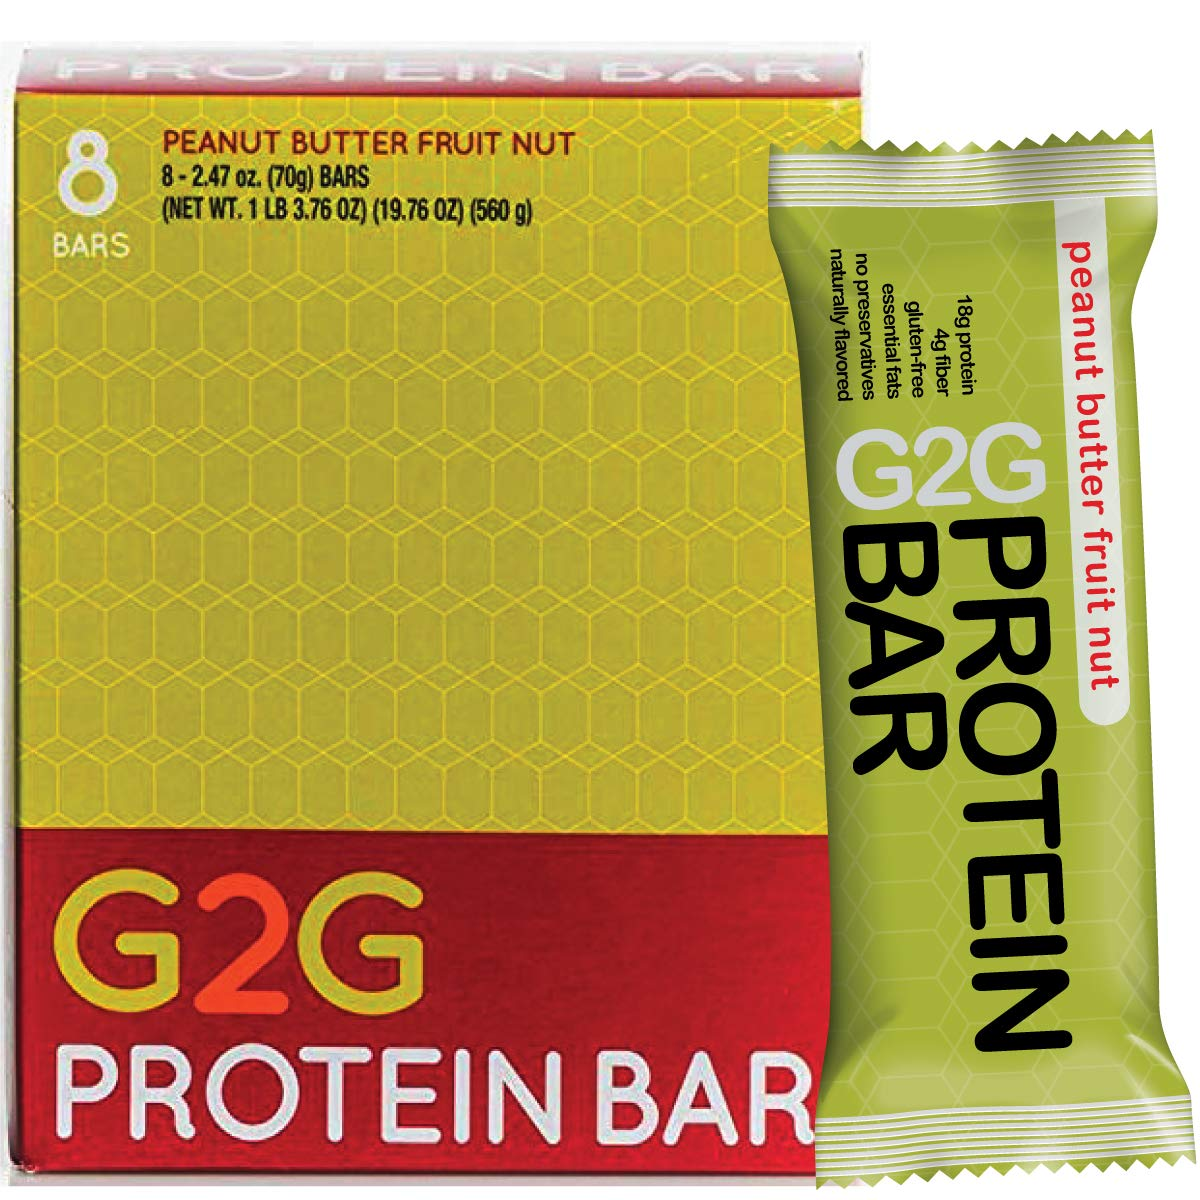 G2G Protein Bar, Peanut Butter Fruit Nut Protein Bar, 8 Count Box